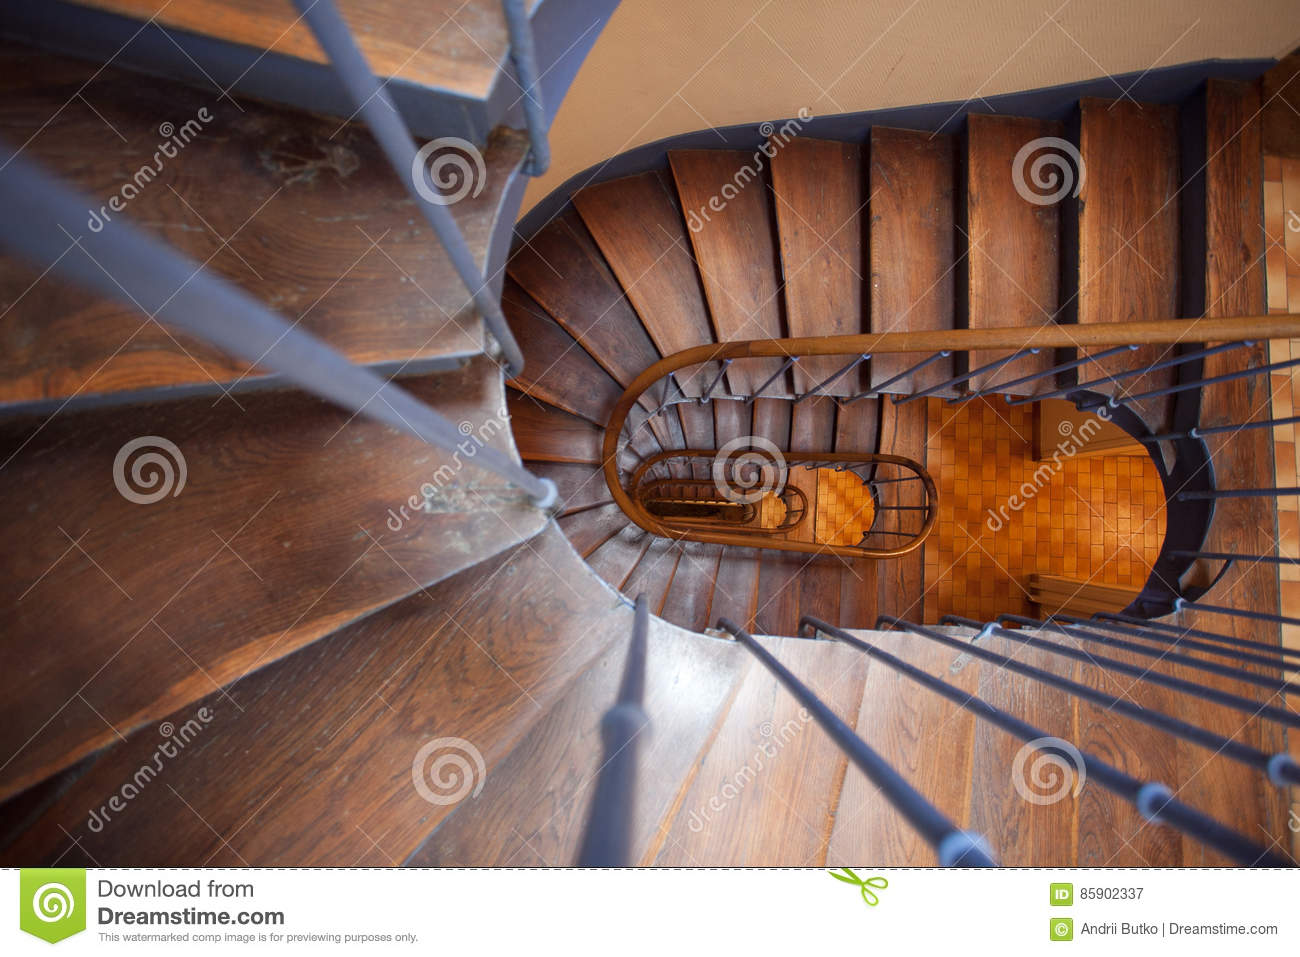 A Plan View Of A Spiral Wooden Staircase Stock Image Image Of